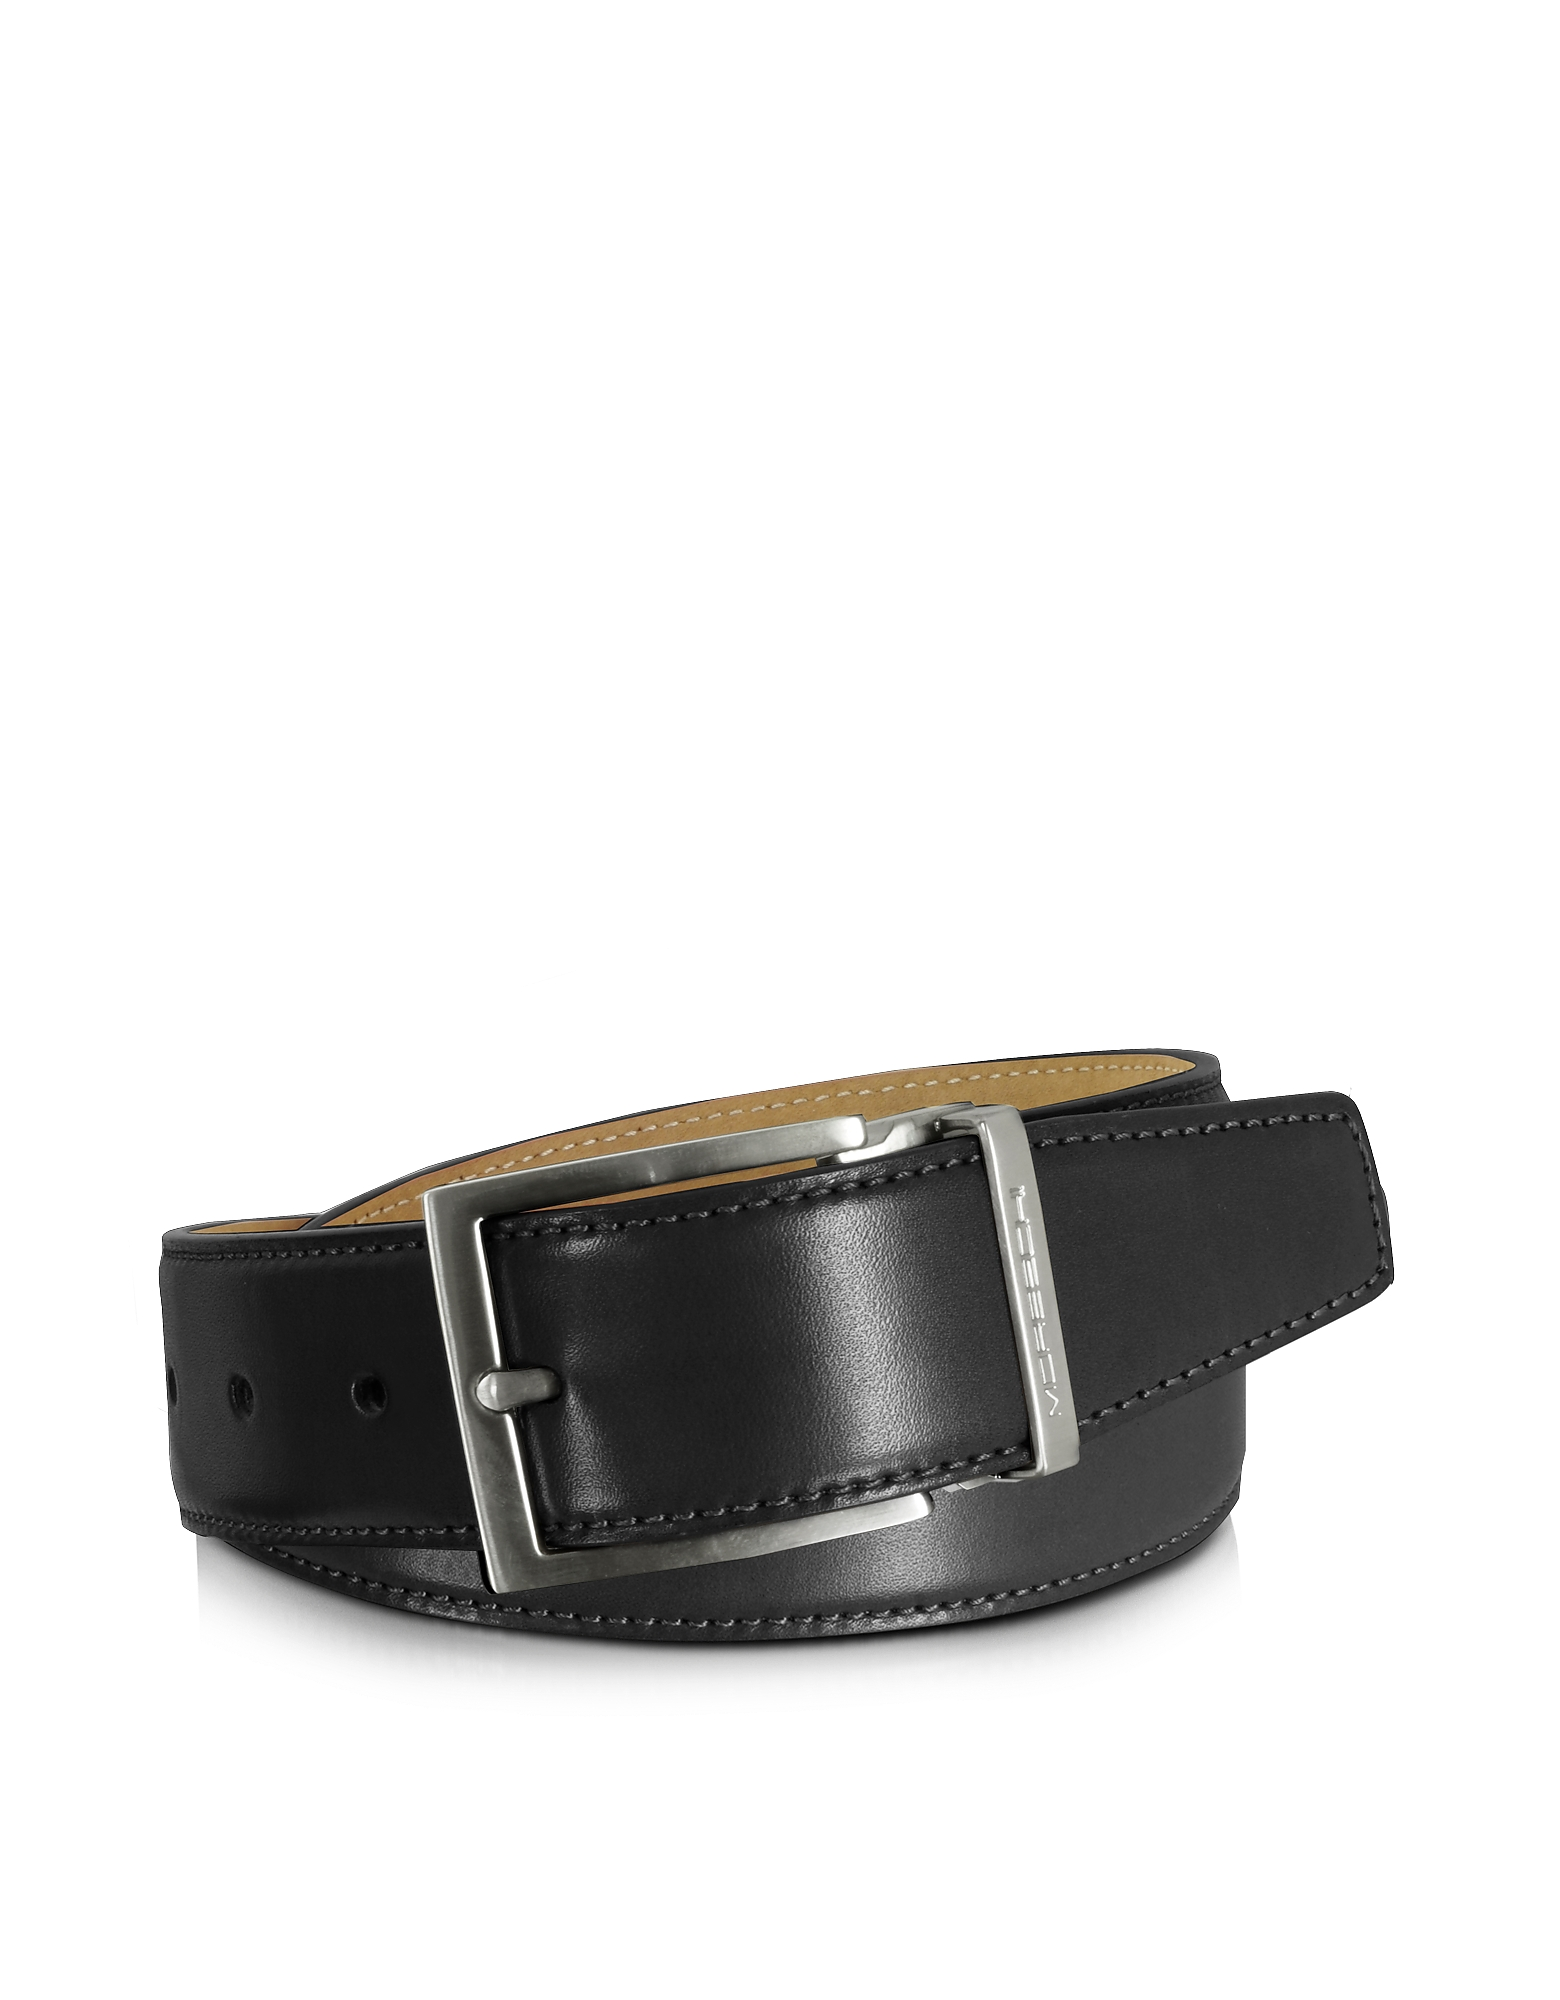 Moreschi Men's Belts, Eton Black Leather Belt